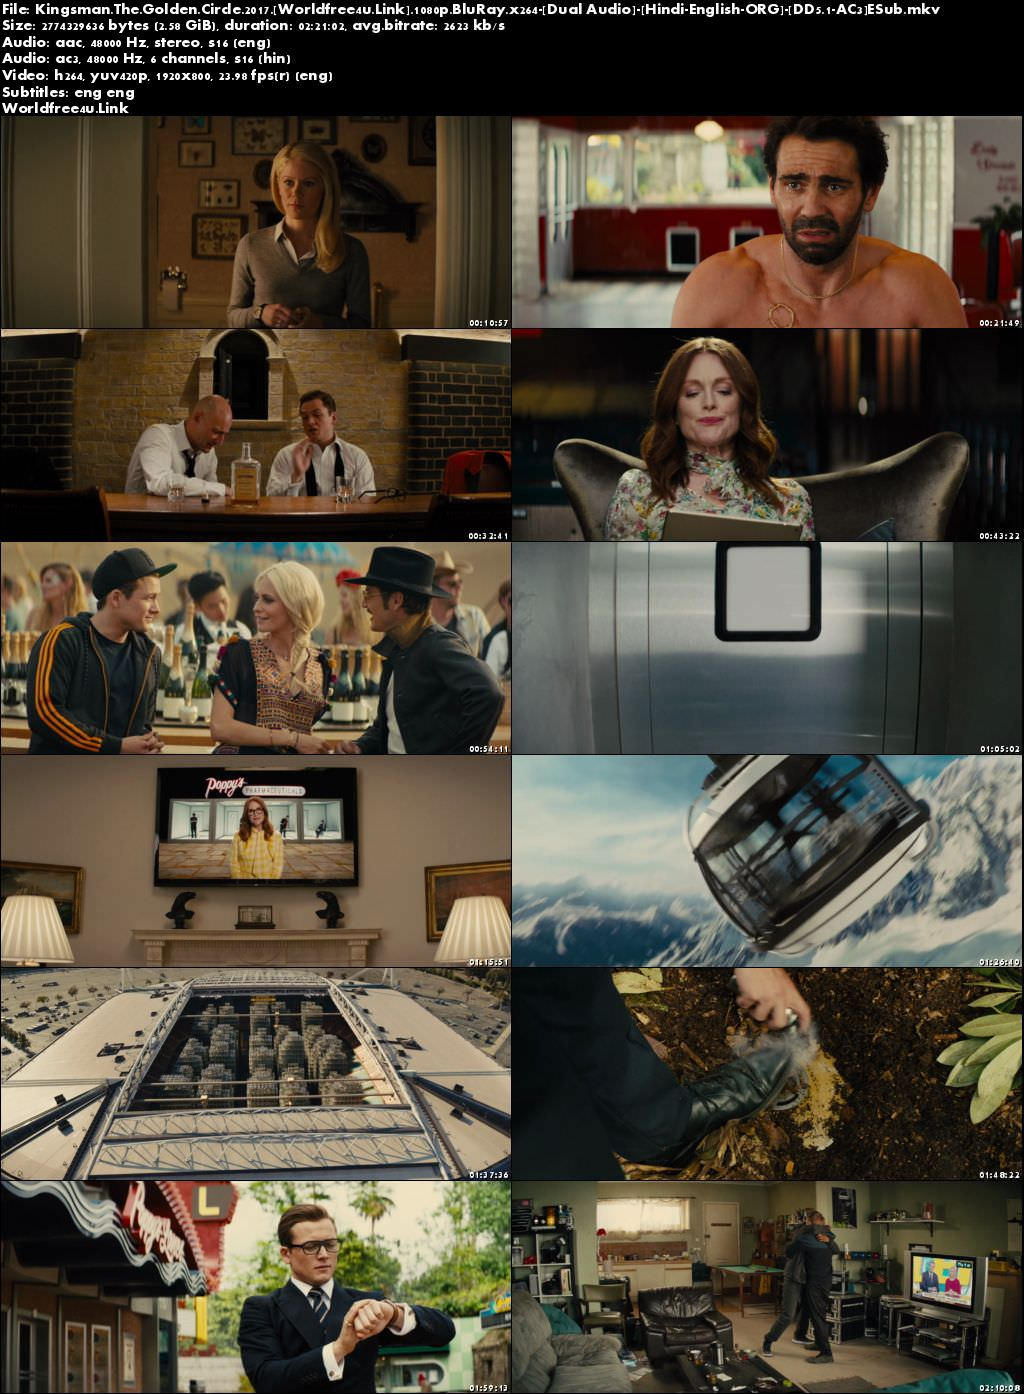 Screen Shoot of Kingsman 2 The Golden Circle 2017 BRRip 1080p Dual Audio Download Full Hd Movie Download in Hindi Dubbed